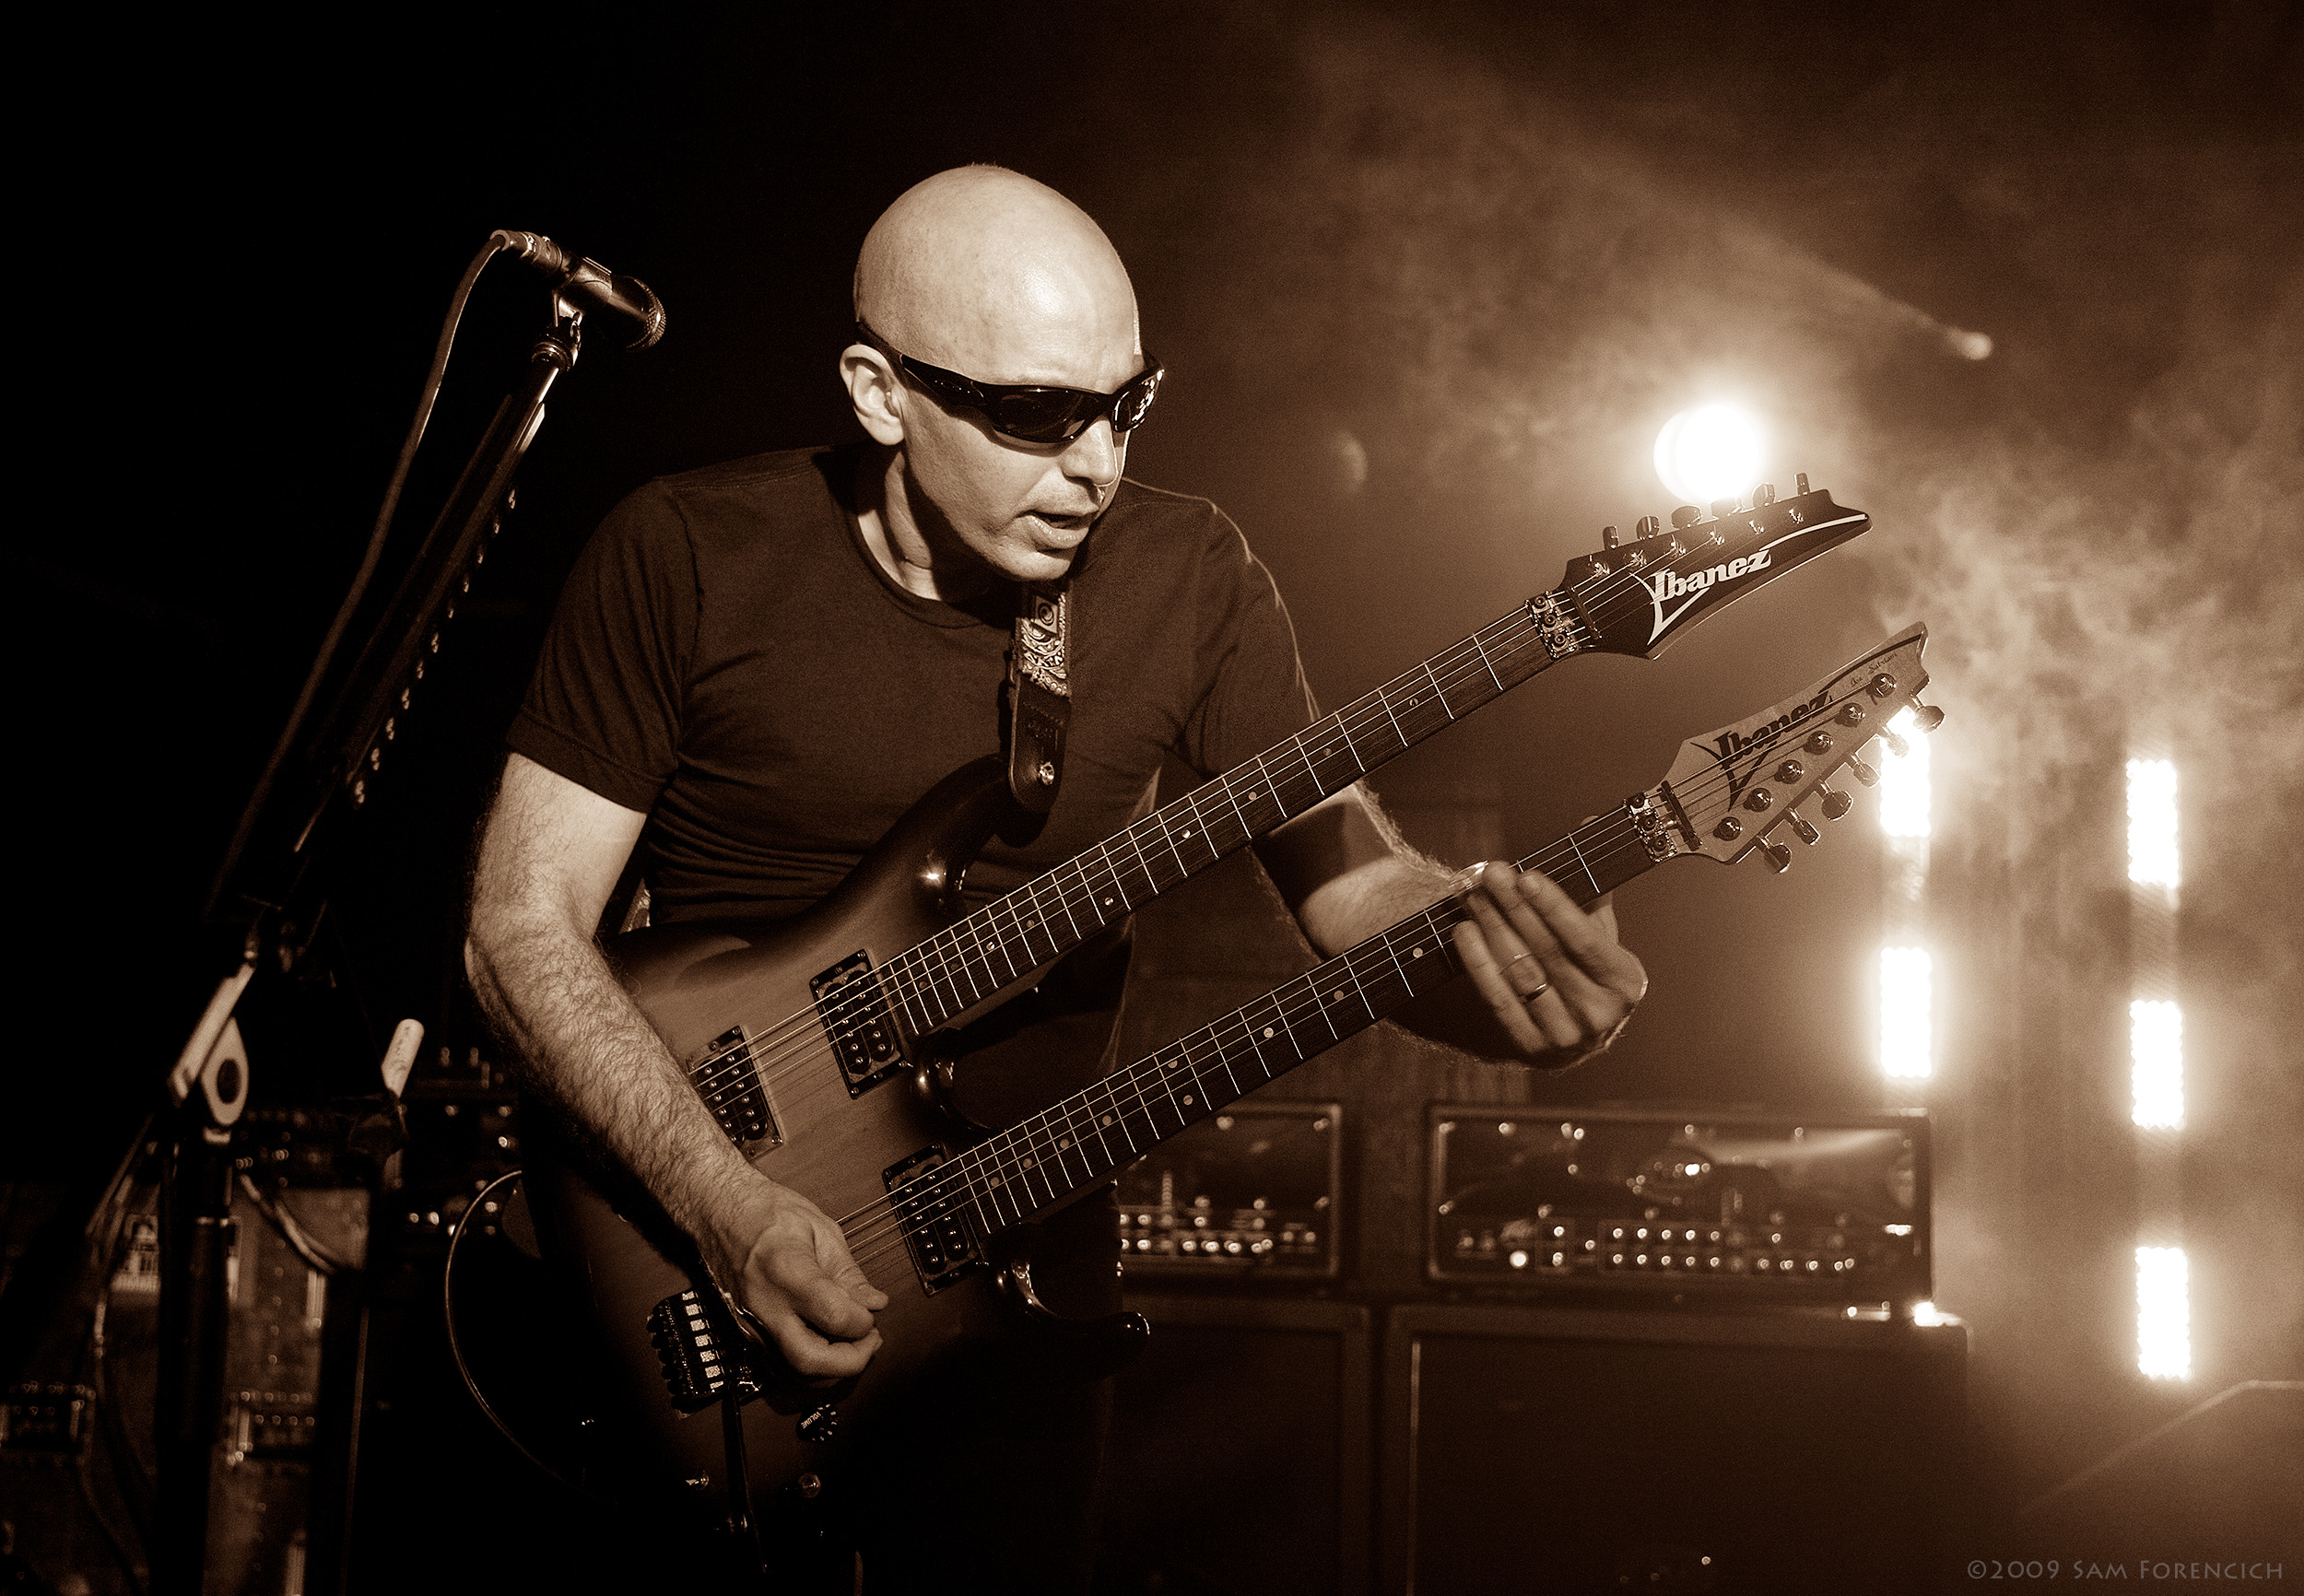 May 2009,Seattle, Washington - Joe Satriani performs with Chickenfoot at El Corazon - 2009 Road Test Tour ©2009 Sam Forencich